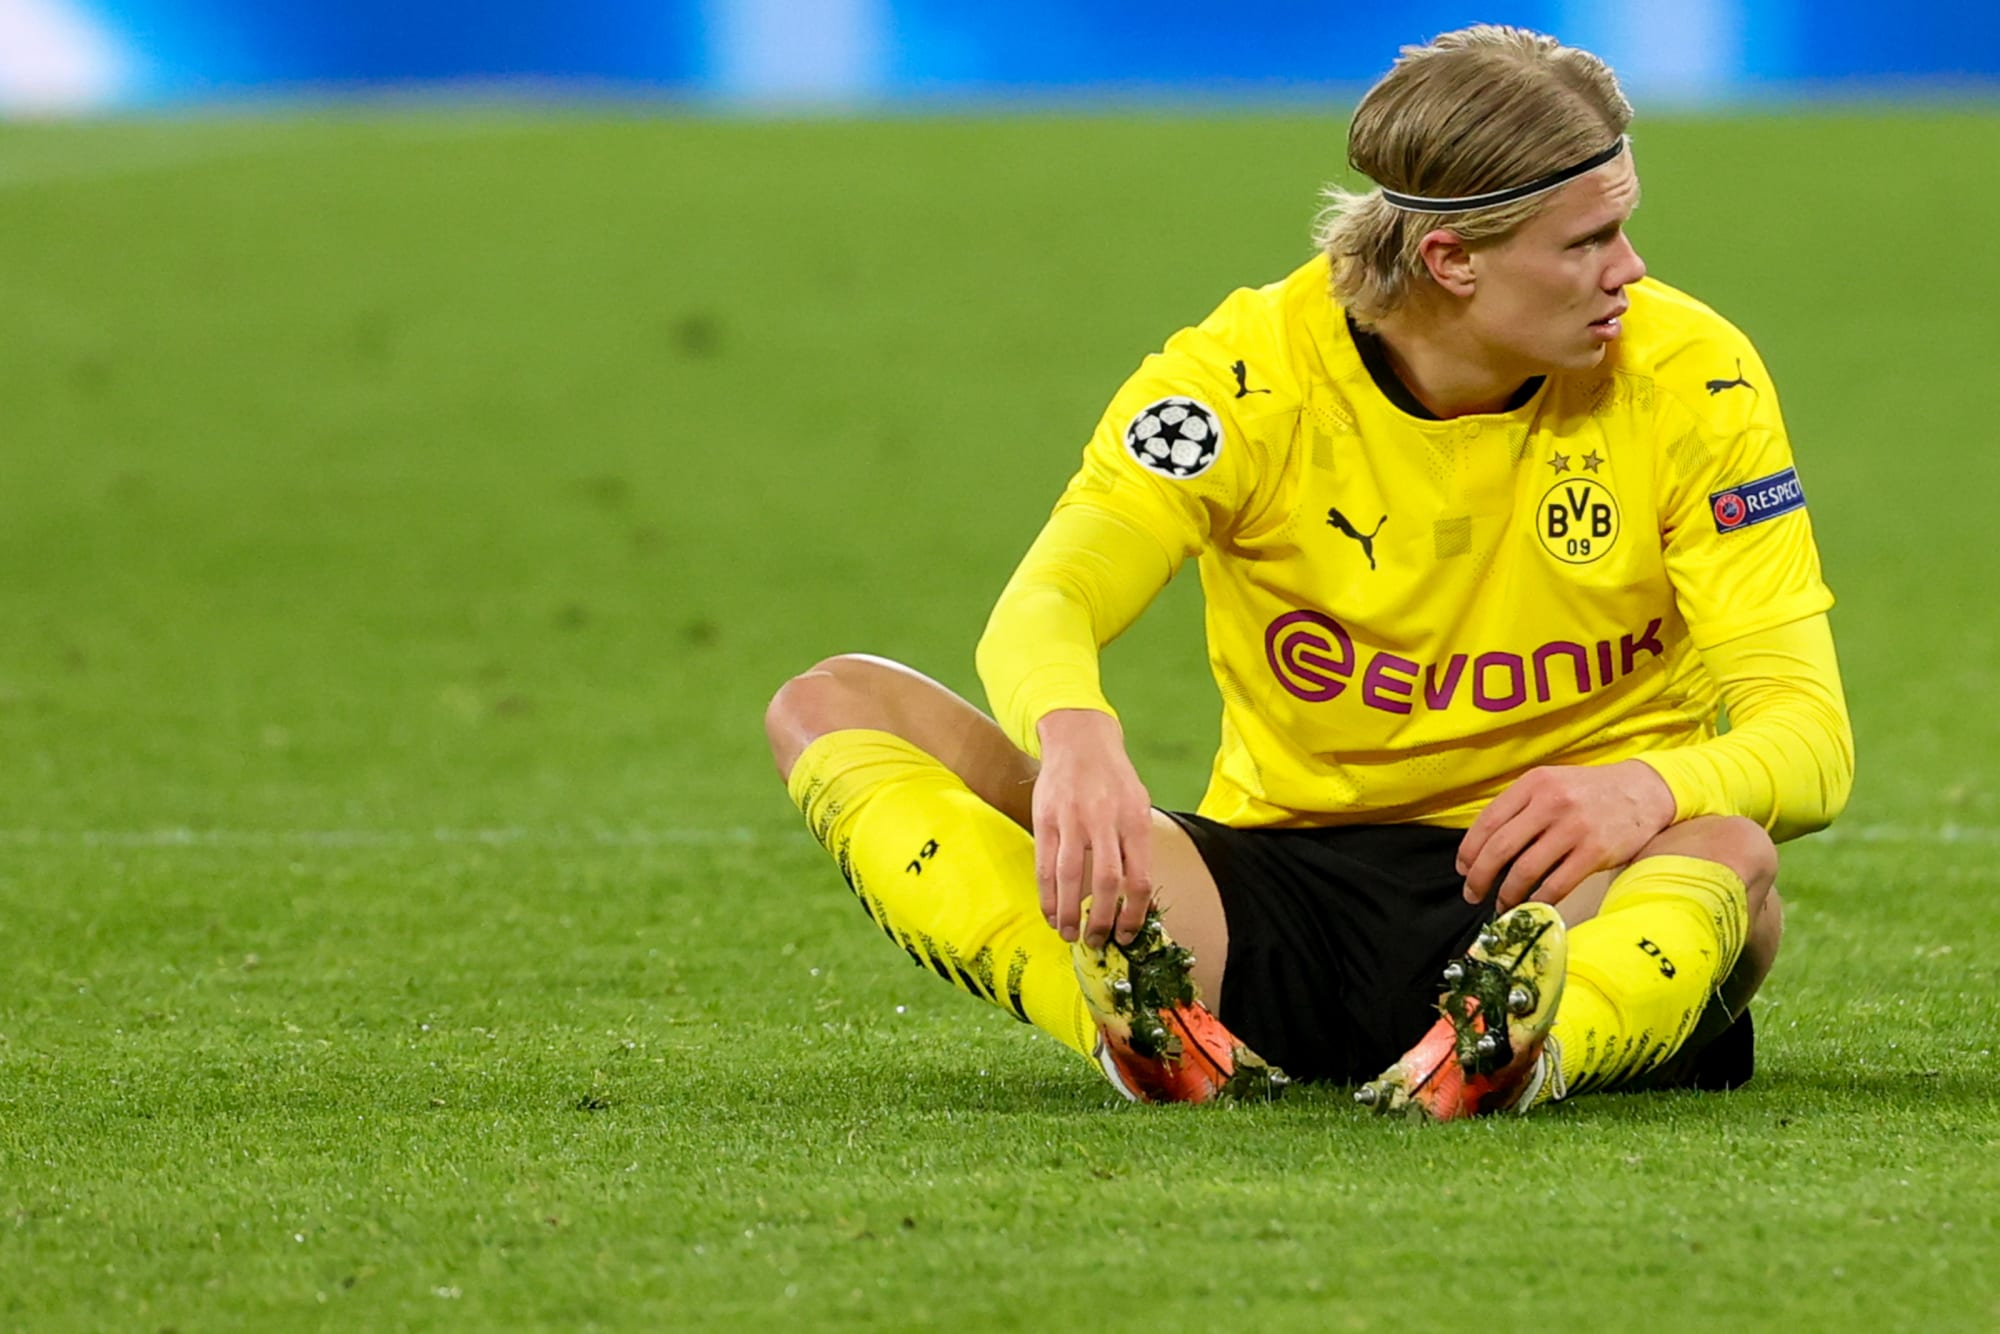 Erling Haaland set to miss Borussia Dortmund's clash against RB Leipzig with muscle injury